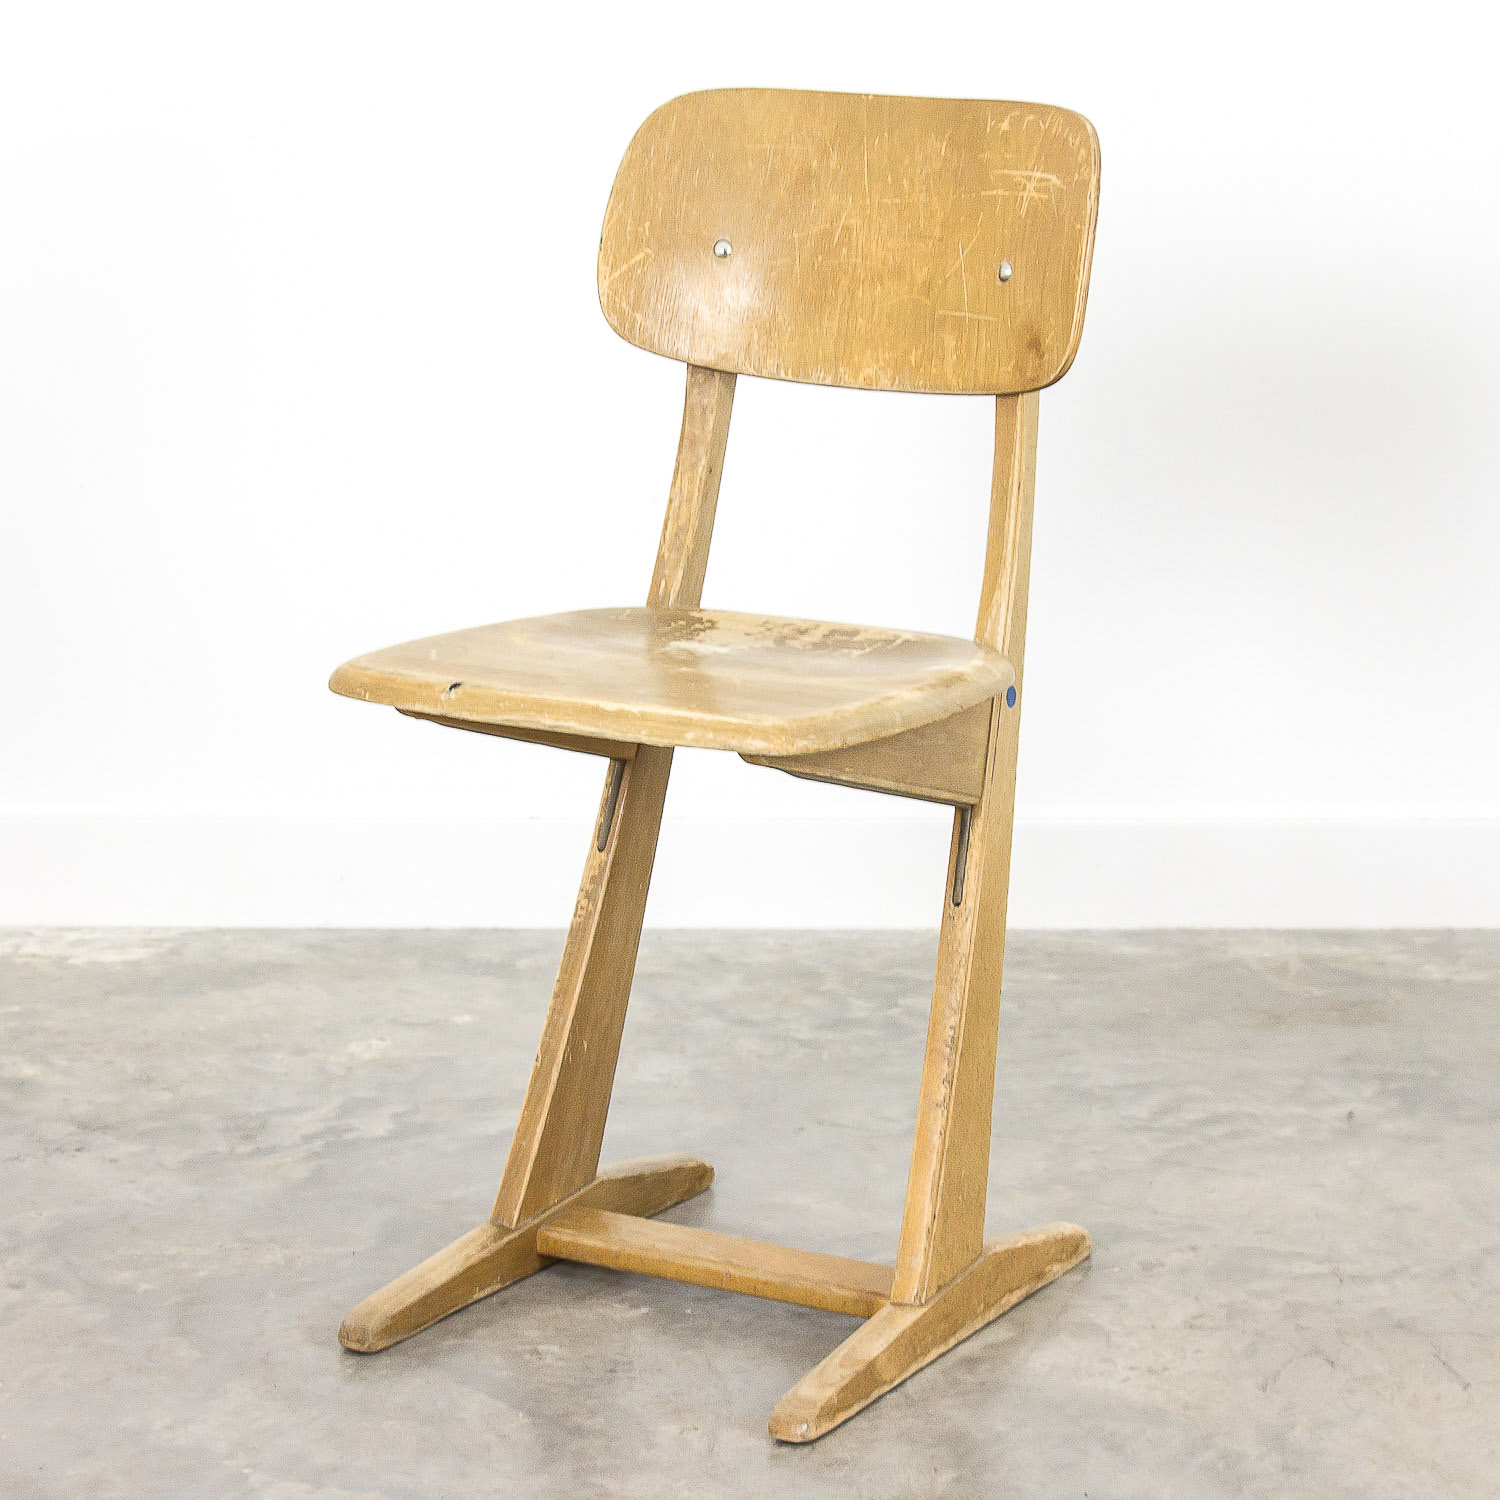 School chair by Carl Sasse for Casala